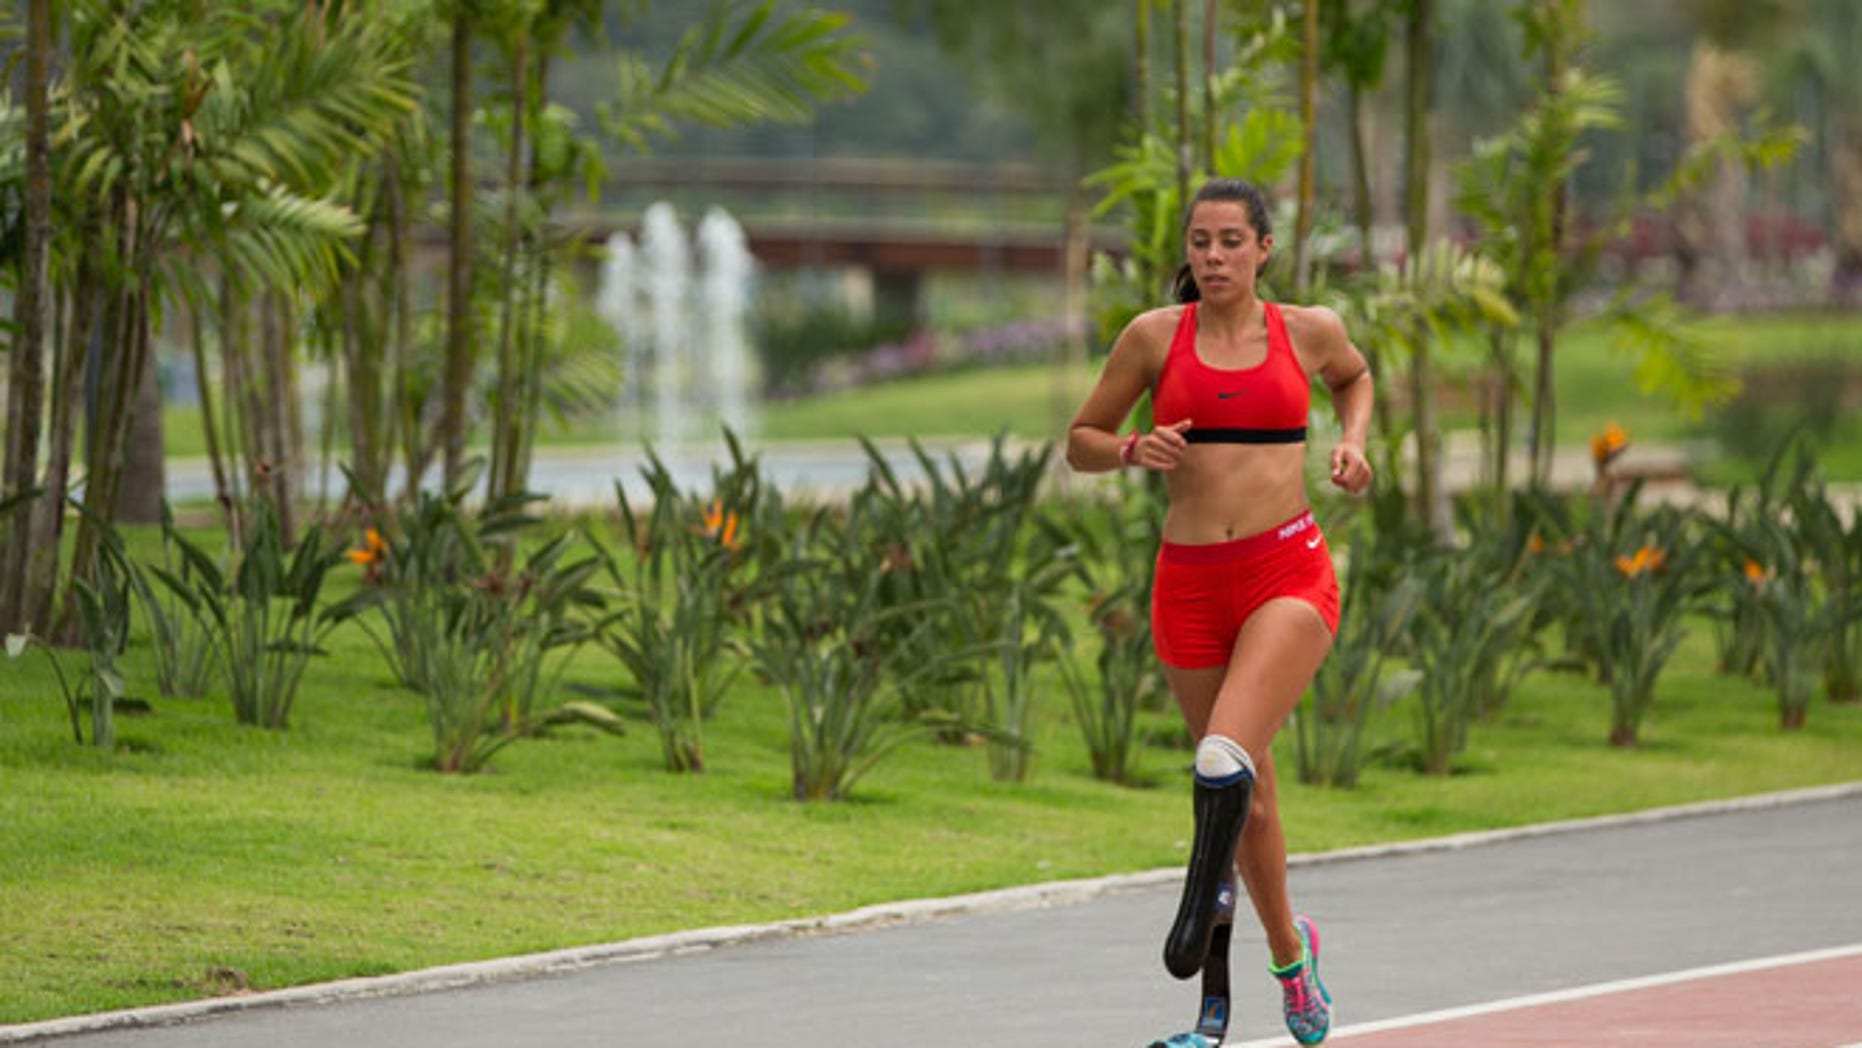 An athlete takes a run on the track in the Paralympic Village in preparation for the Paralympic Games in Rio de Janeiro, Brazil